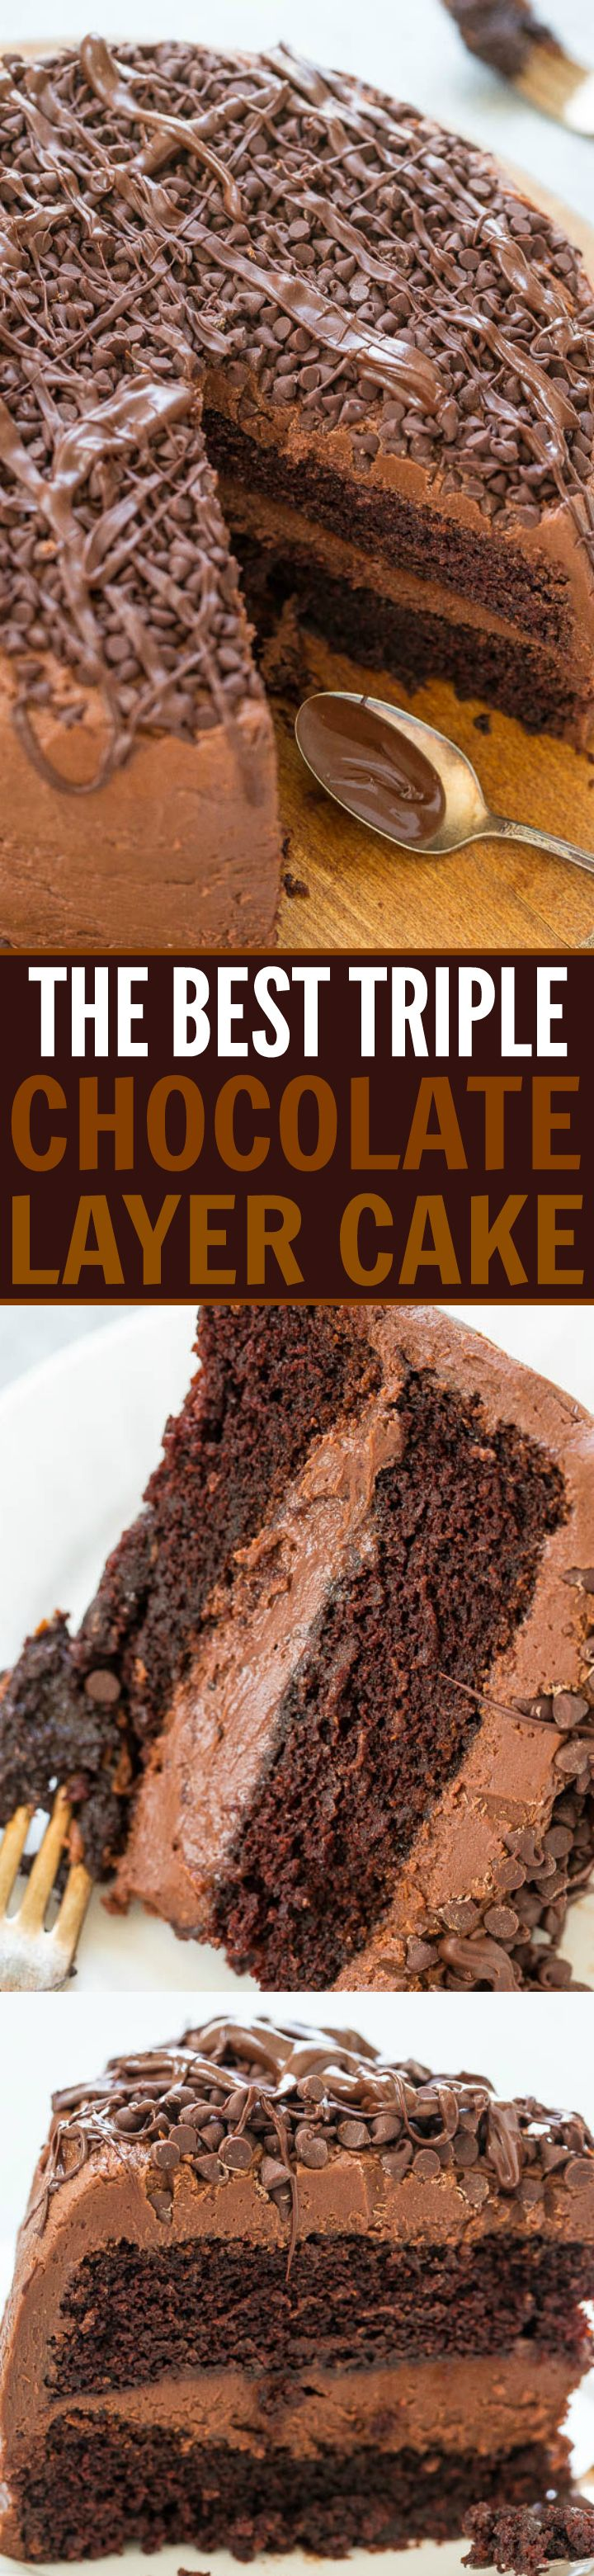 Top 25+ best Chocolate cakes ideas on Pinterest | Chocolate cake ...